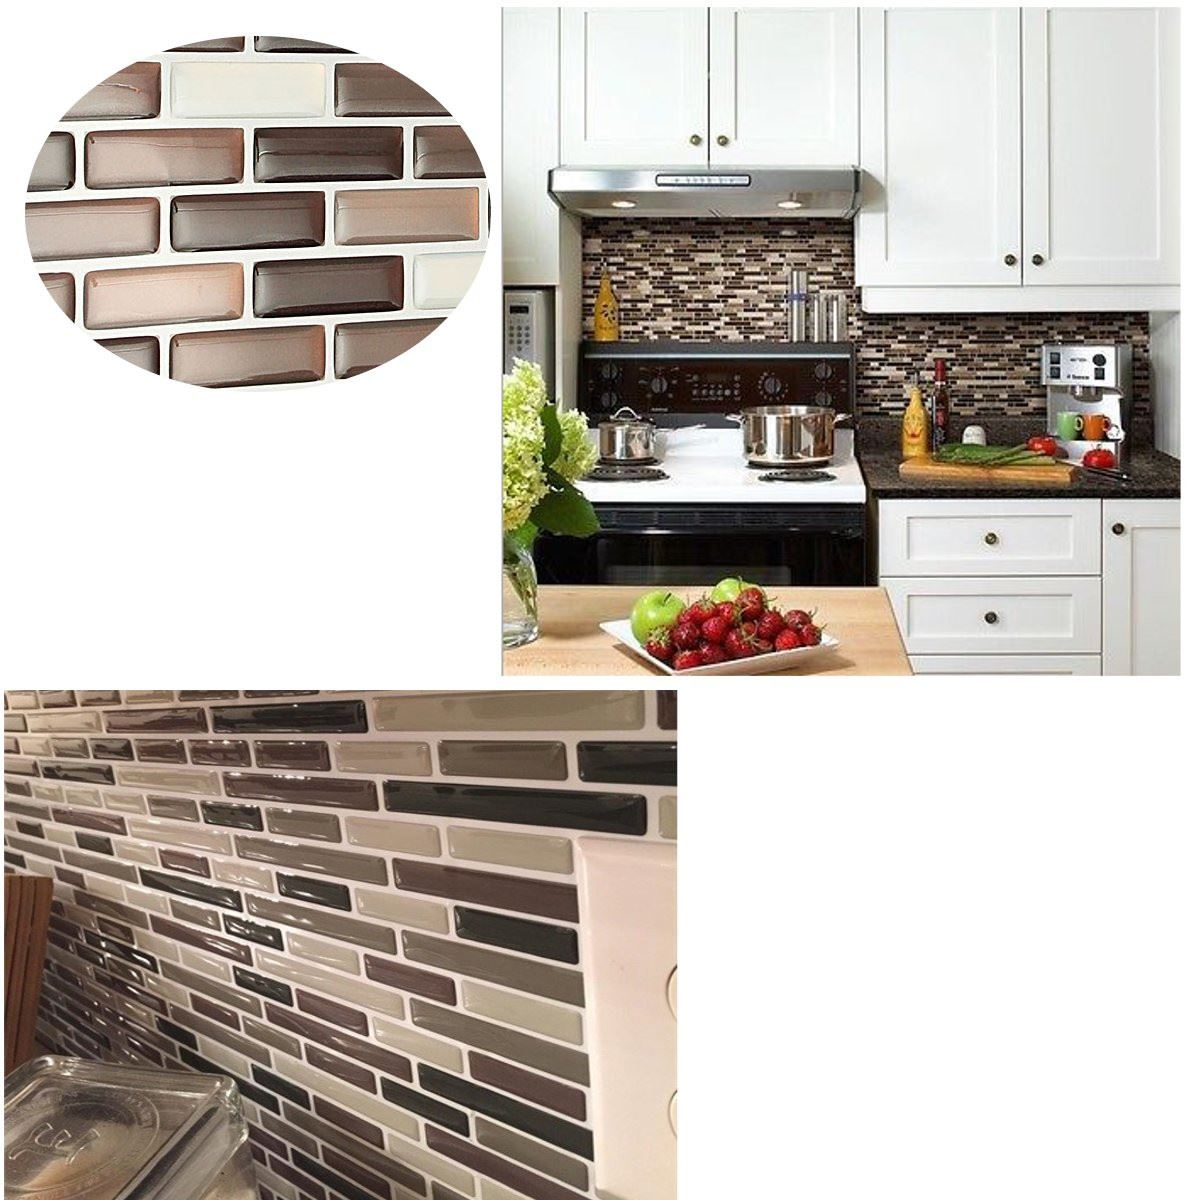 3d Foil Sticker Mosaic Tile Wall Sticker Red Brick Bathroom Kitchen  Removable Diy Self Adhesive Wallpaper Home Decorationin Wall Stickers From  Home